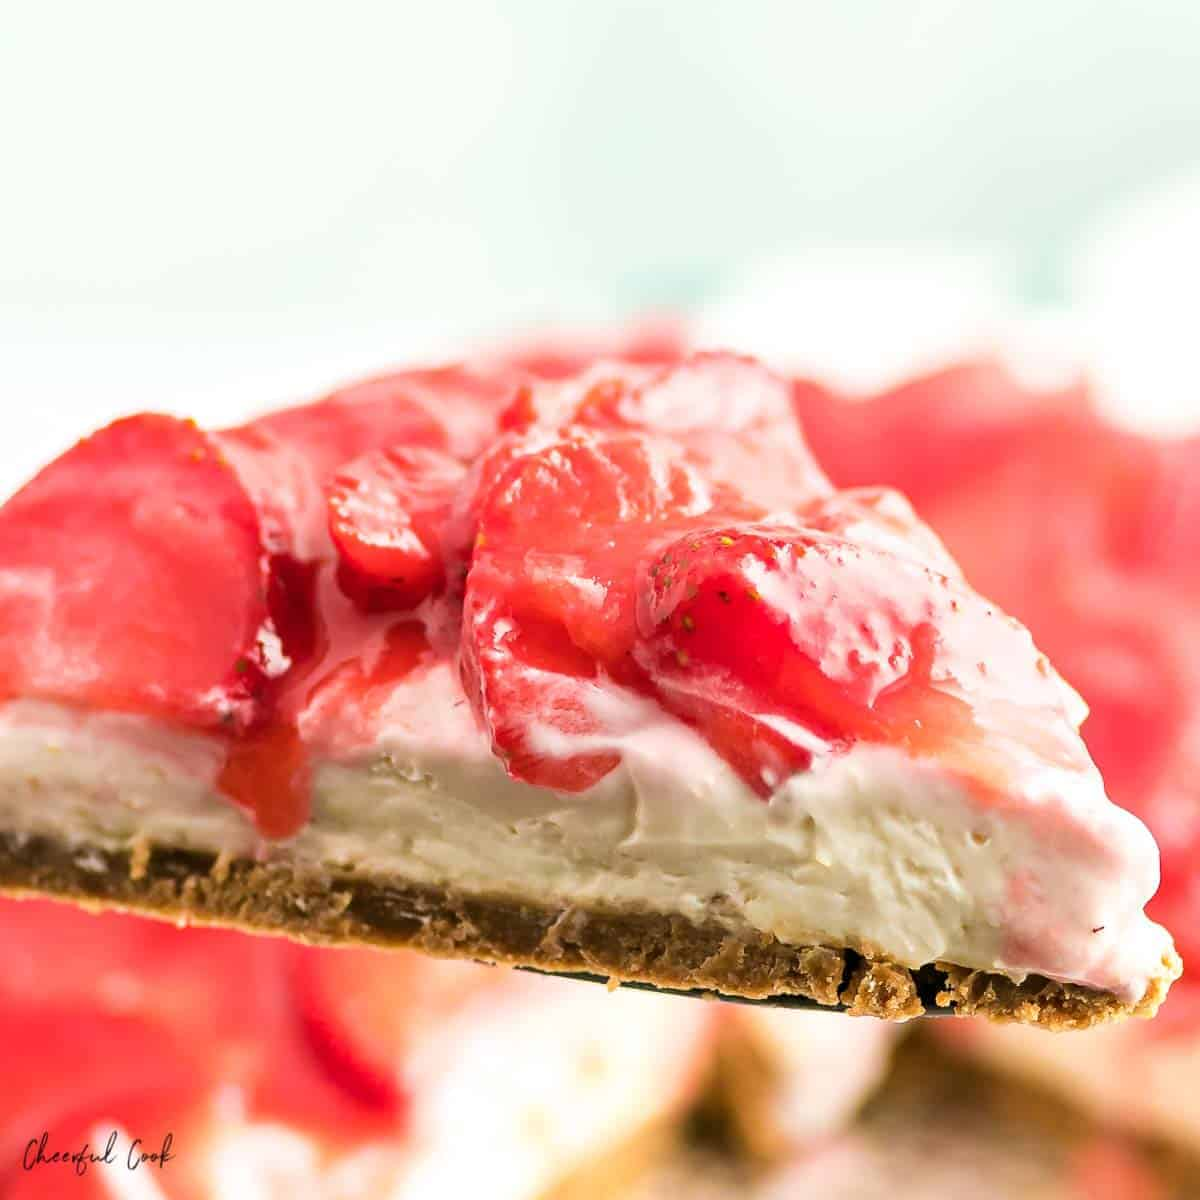 A closeup of a slice of no bake strawberry cheesecake